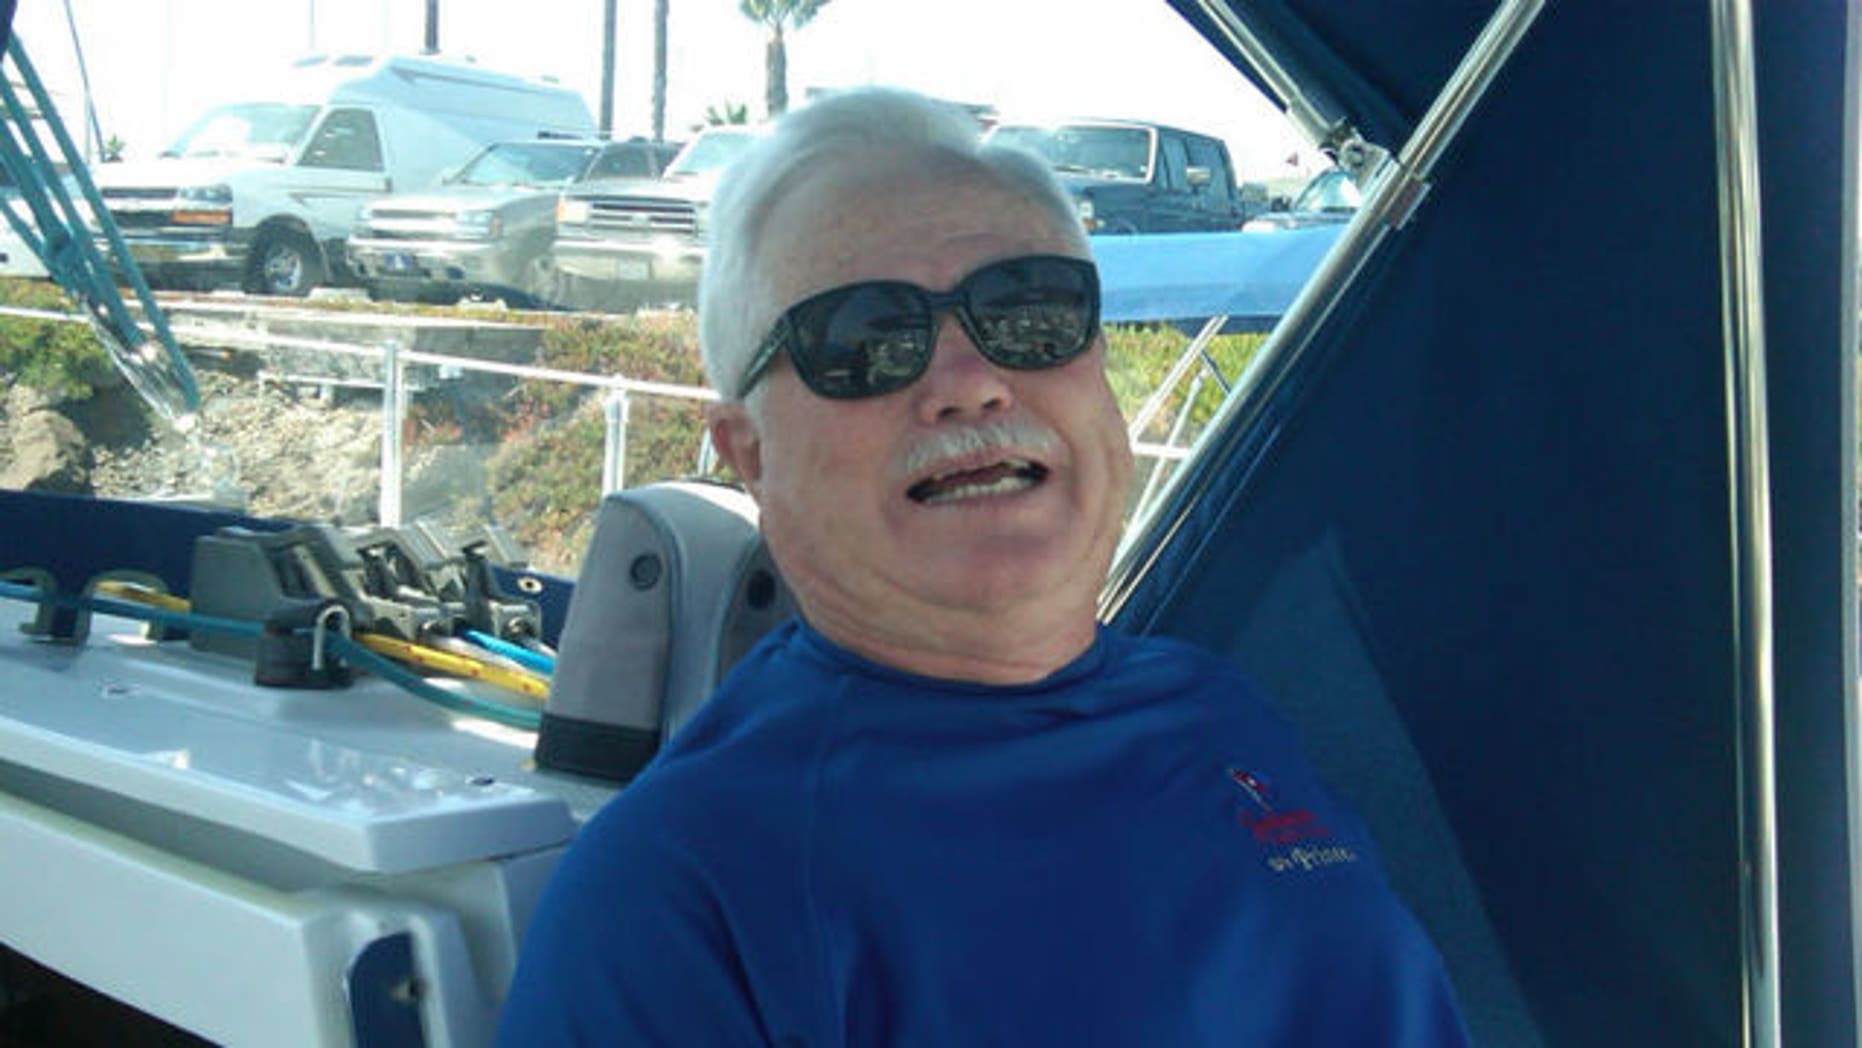 Richard Byhre, 76, was reported missing Feb. 20, 2015, by his wife of 34 years.